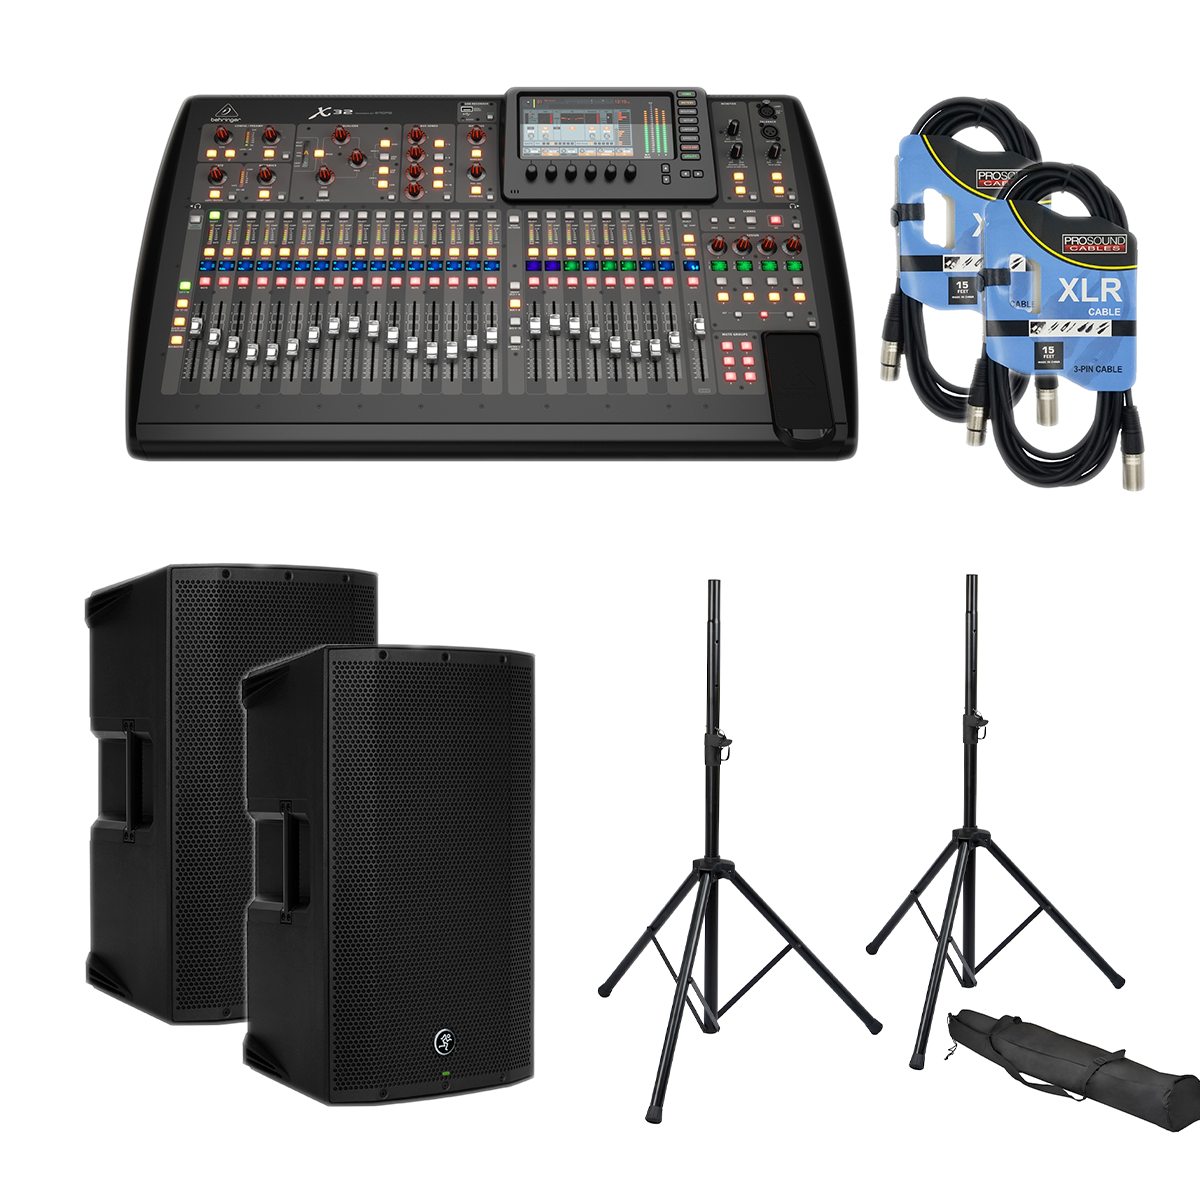 -6 Behringer X32 40-Channel - Mackie Thump12A Pair - Speaker Stands - 2 XLR Cables - $2749.99